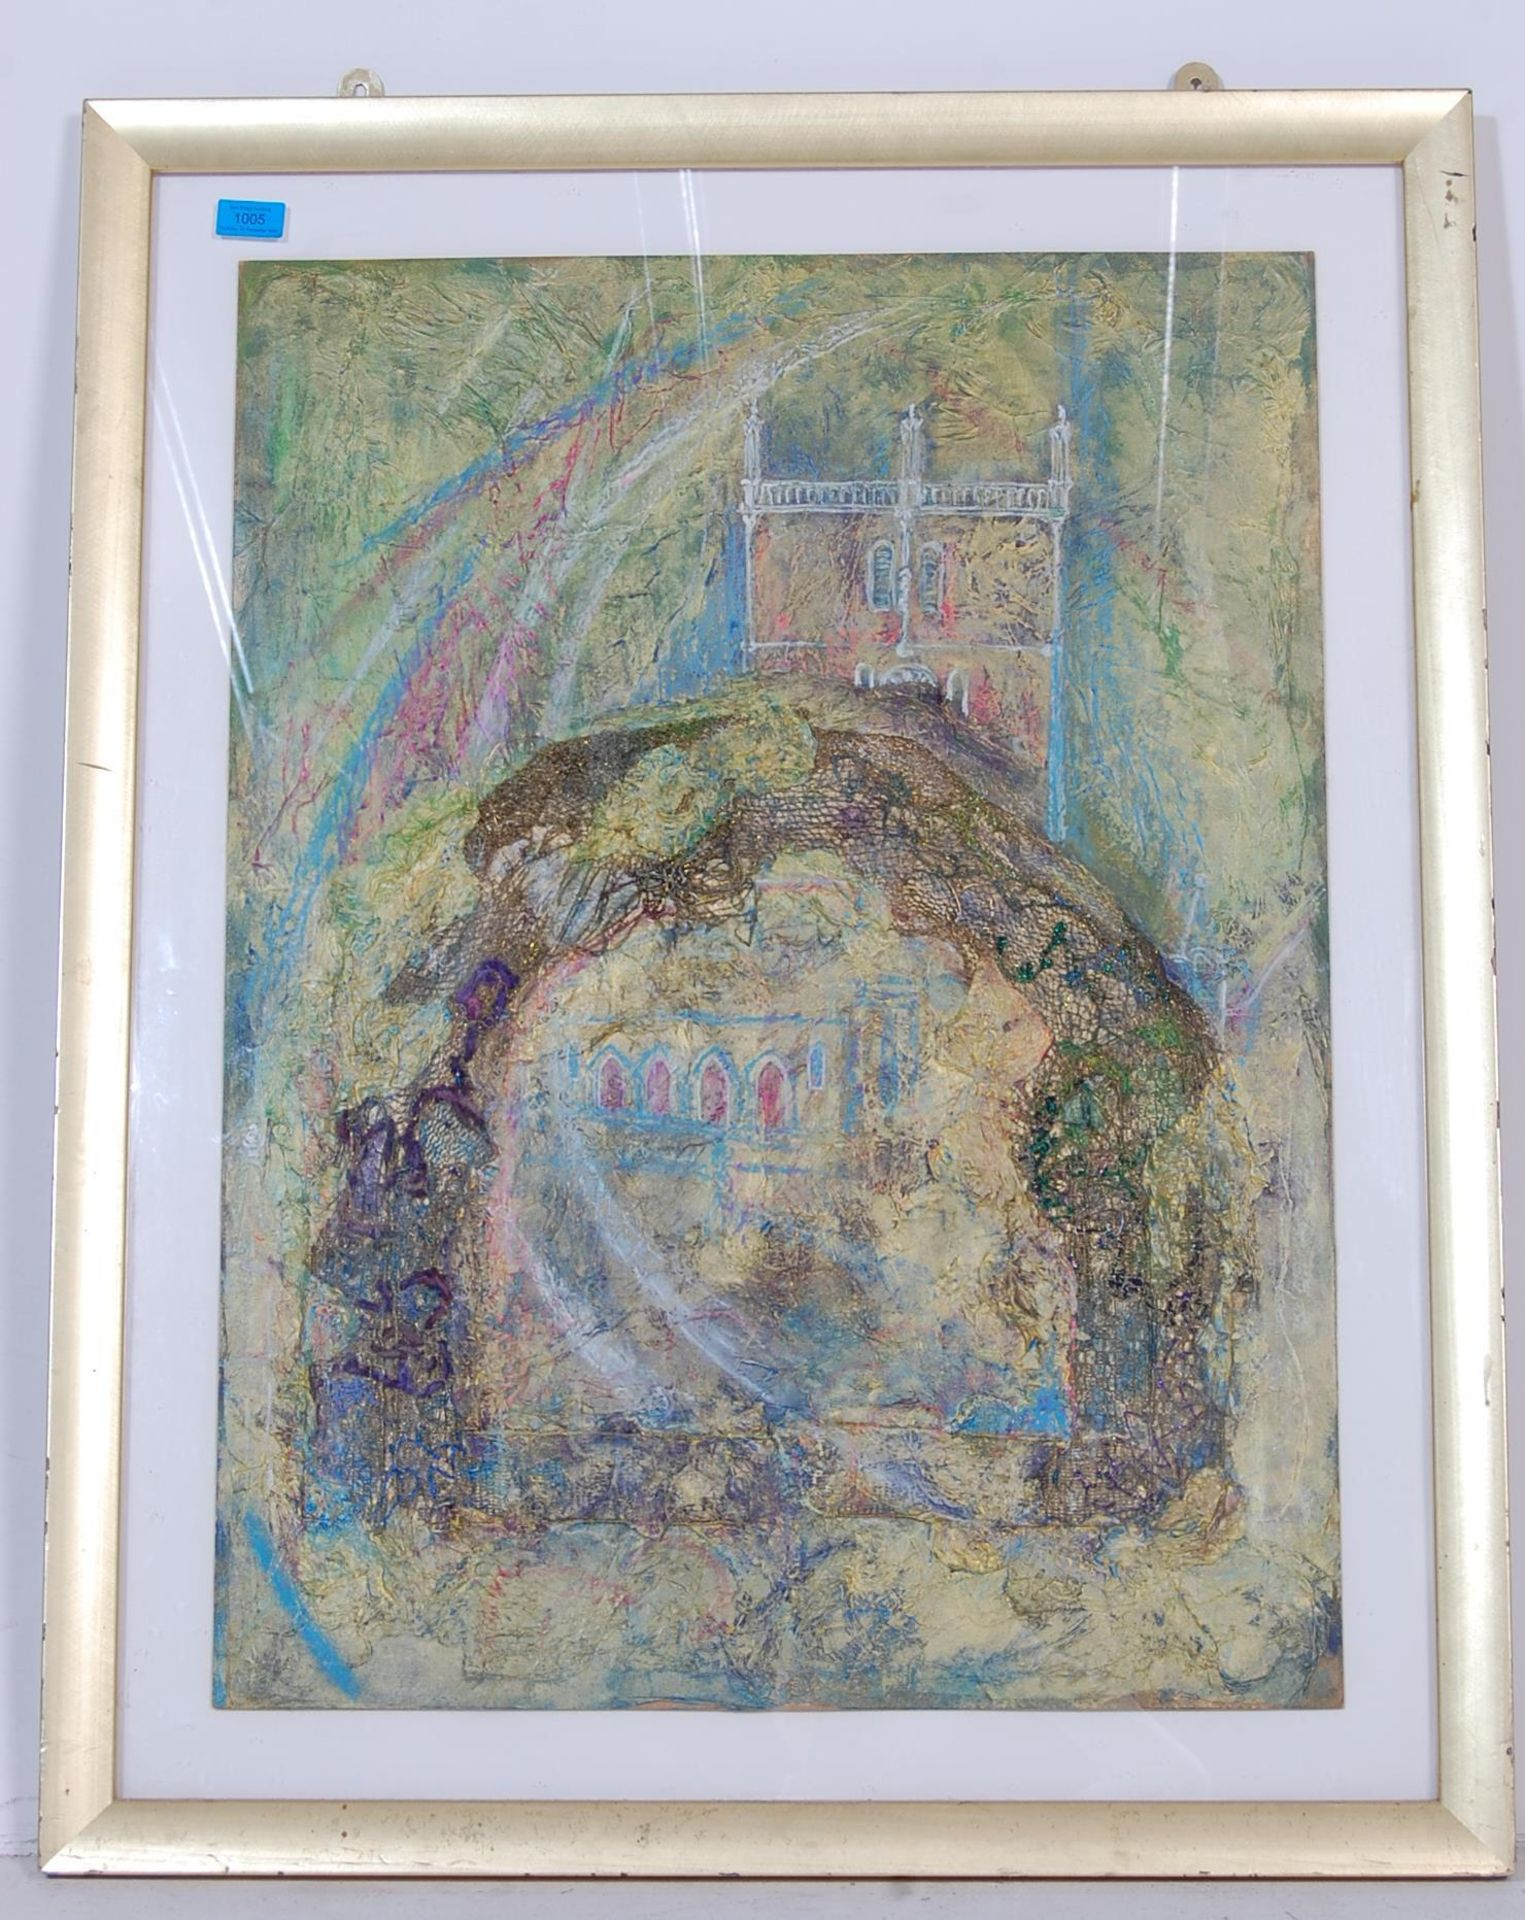 DIANE THOMAS - ST DAVIDS CATHEDRAL (2004). A MIXED MEDIA PAINTING DEPICTING ST DAVIDS CATHEDRAL.